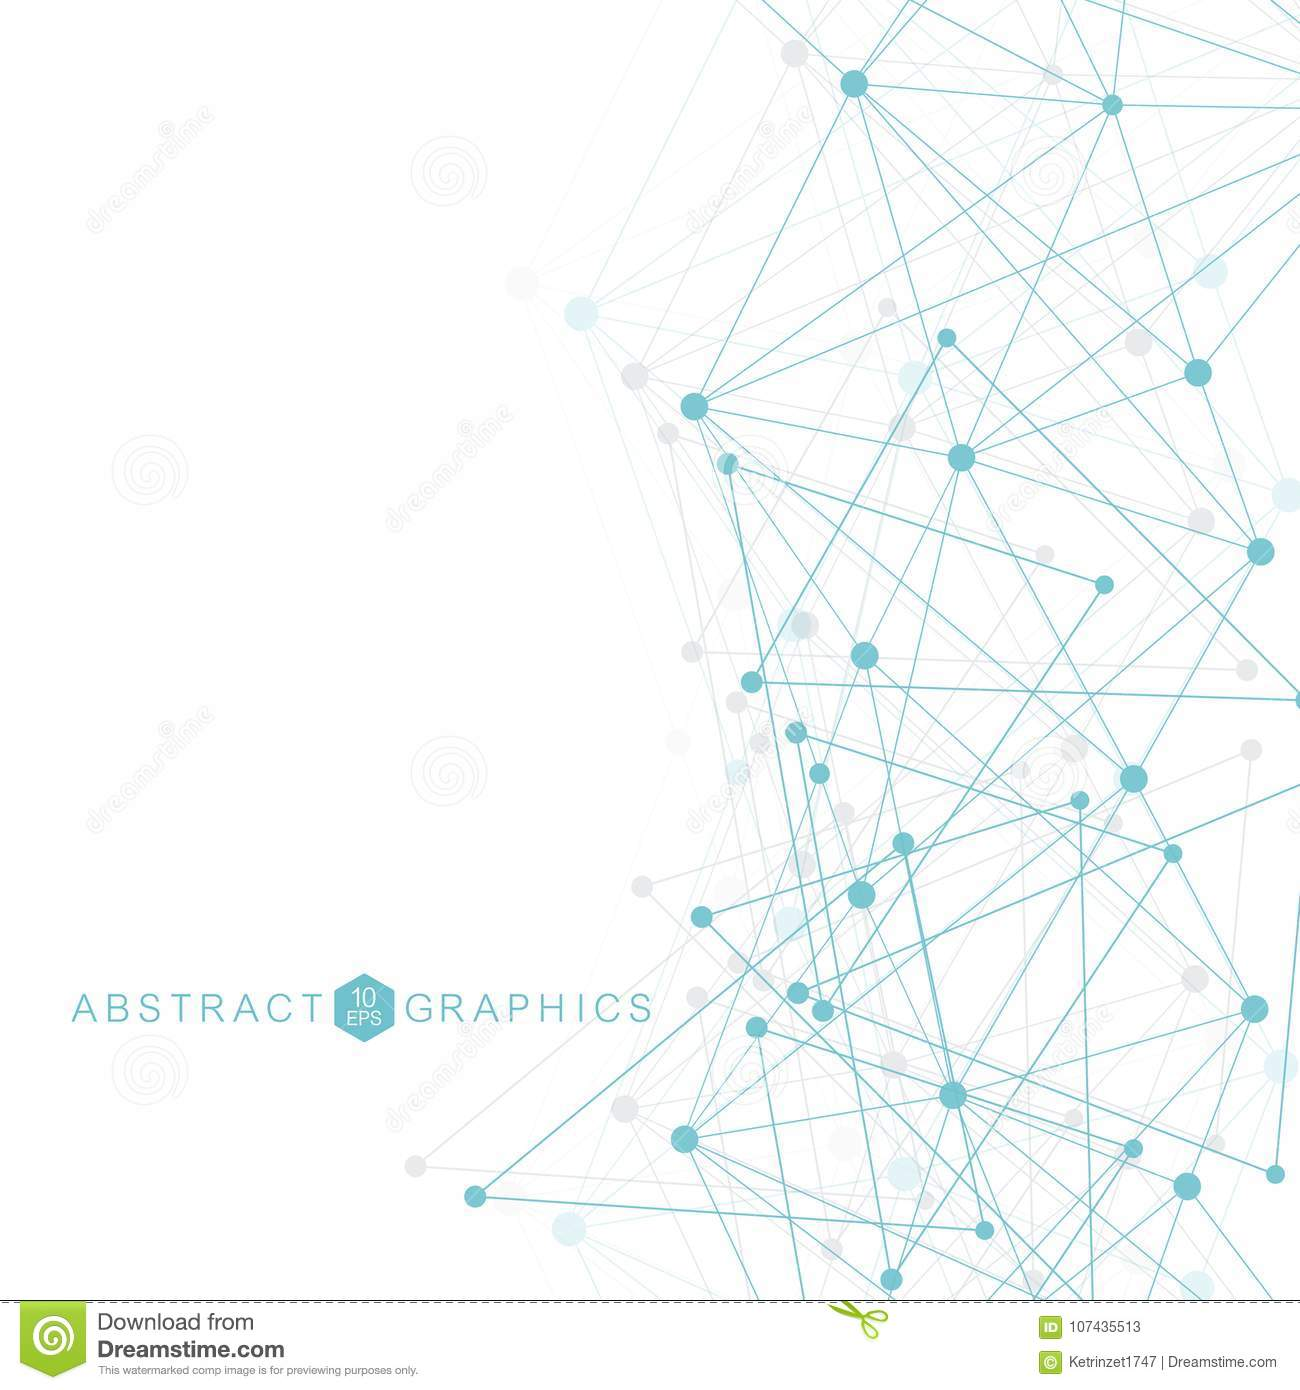 Geometric abstract background with connected line and dots. Structure molecule and communication. Big Data Visualization